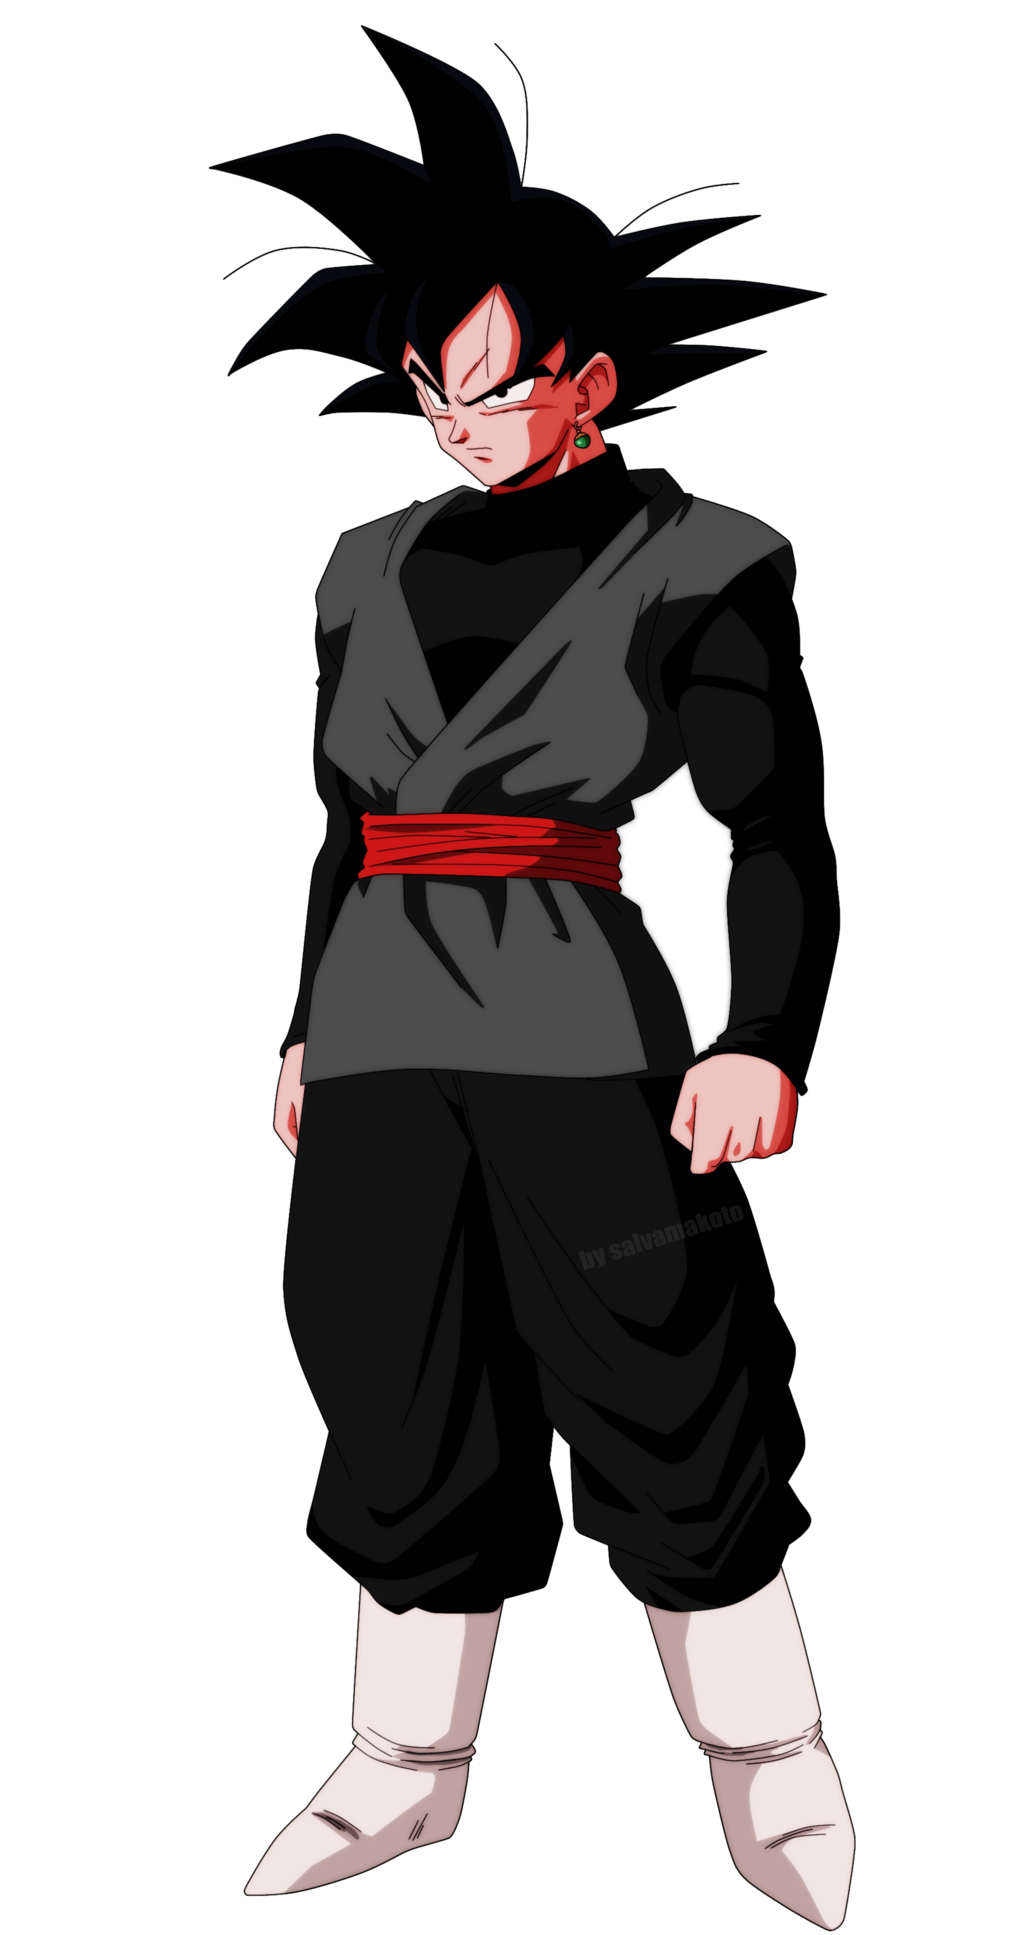 Cool Black Goku Smartphone Wallpapers Wallpapers Themes